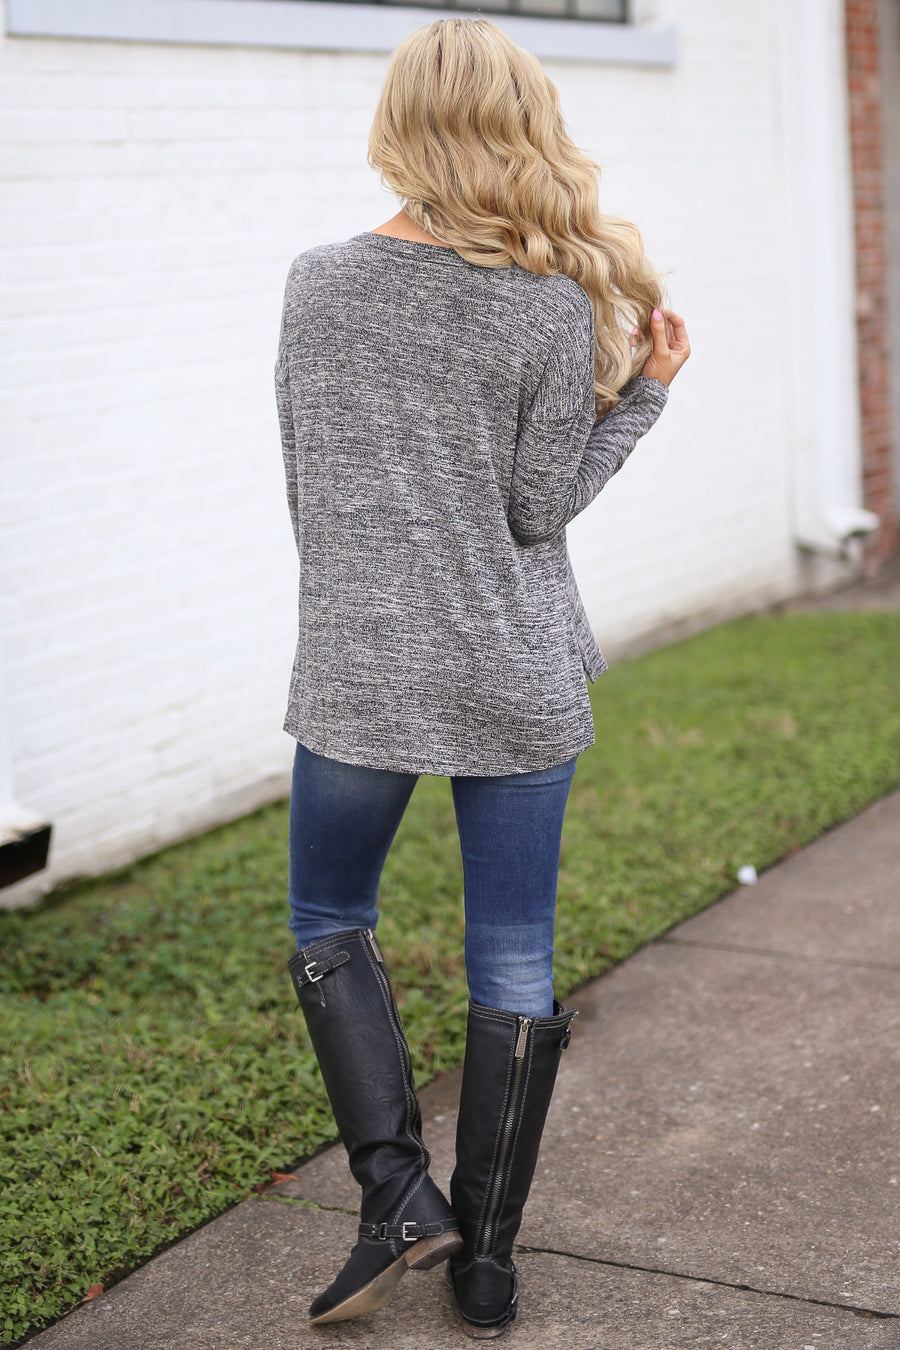 Let the Good Times Roll Top - Heathered Black v-neck long sleeve basic top, front, Closet Candy Boutique